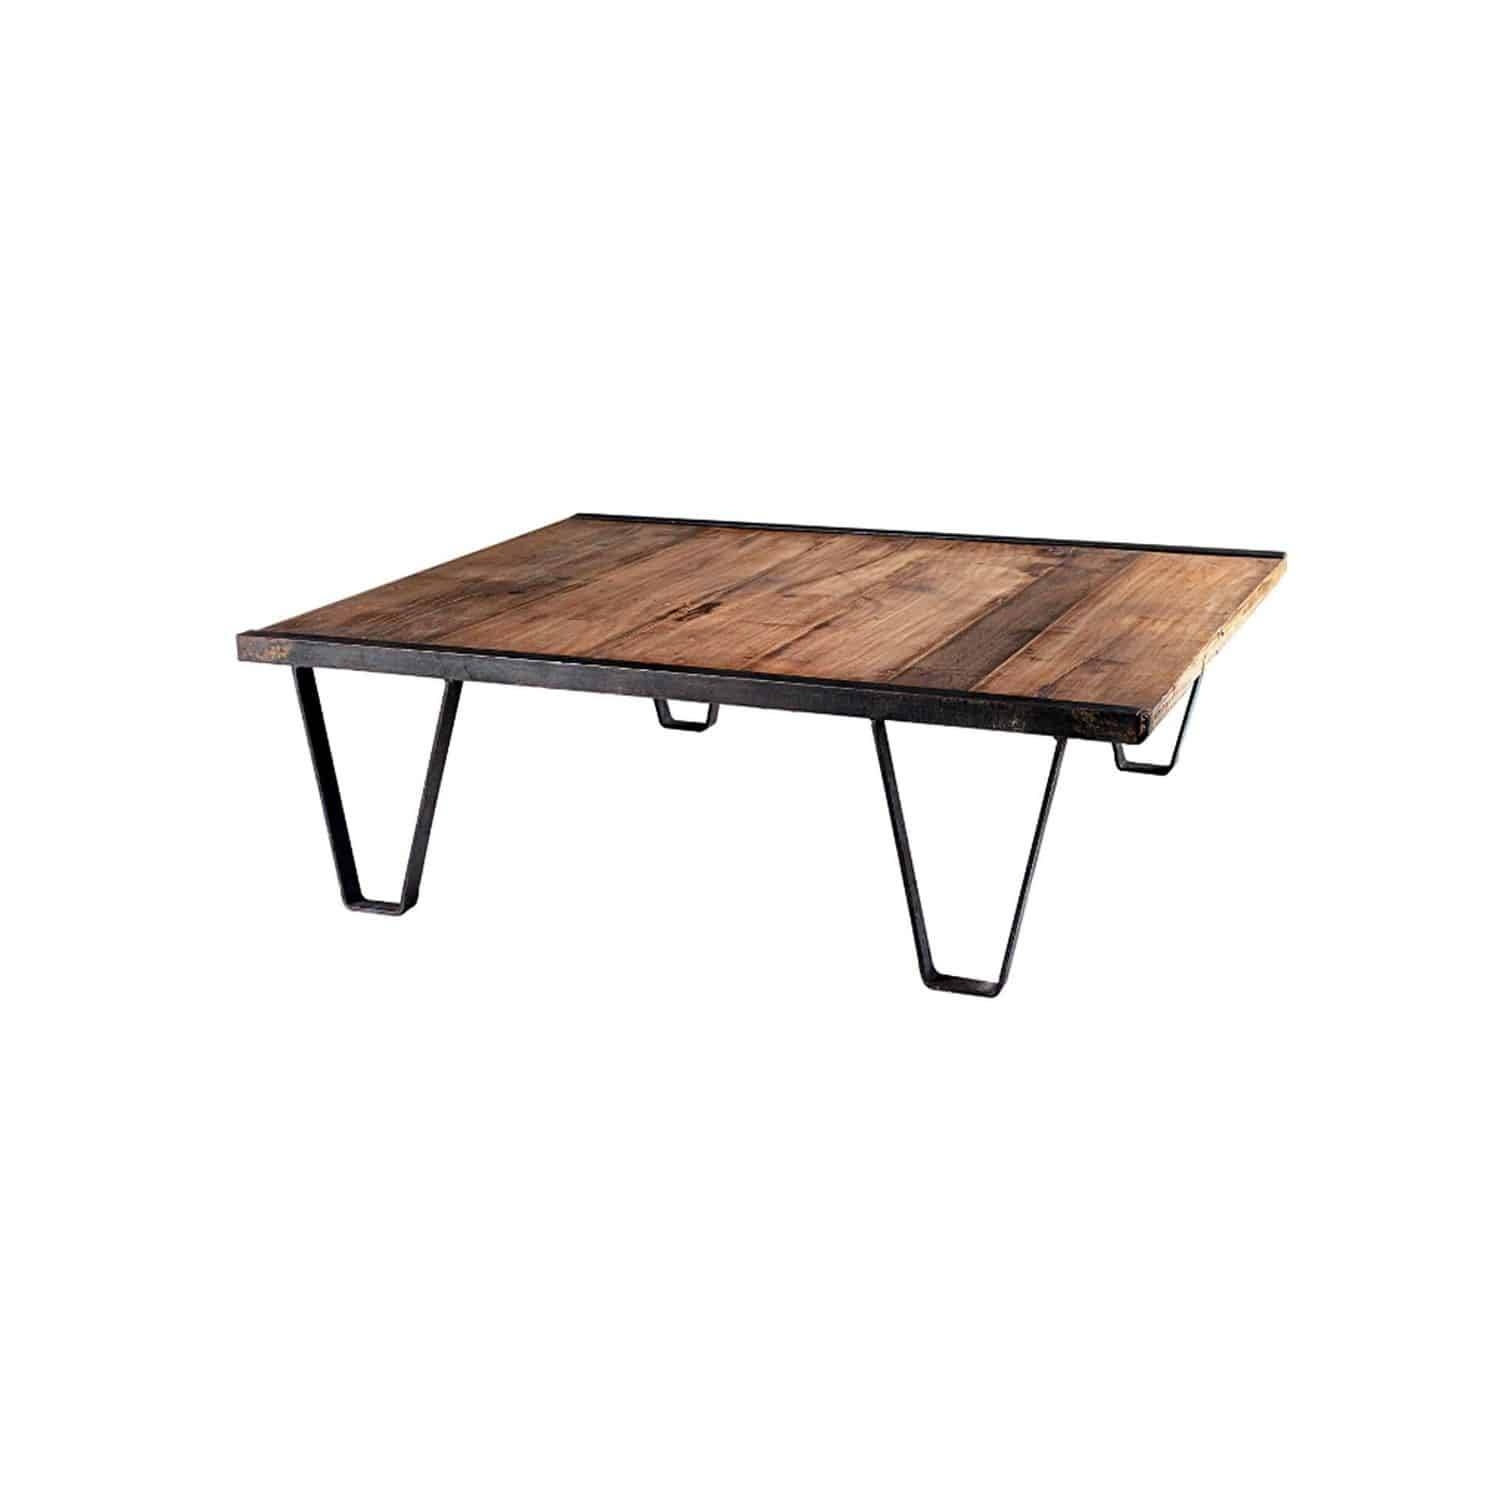 Industrial Style Coffee Table / Wooden / Metal / Rectangular Pertaining To Coffee Table Industrial Style (View 10 of 30)